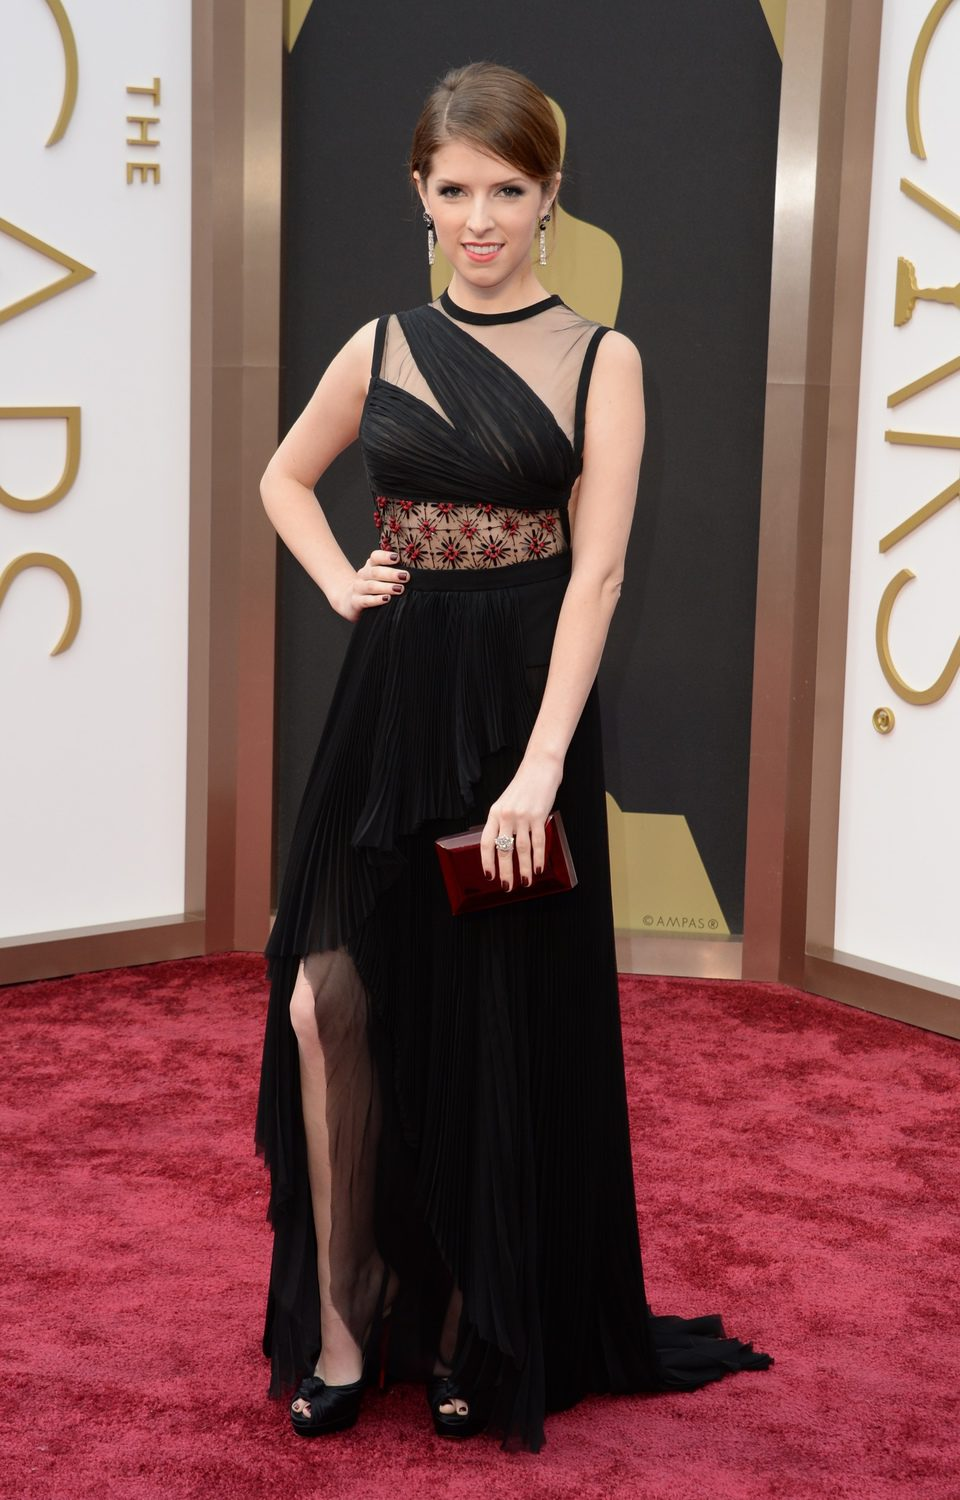 Anna Kendrick at the 2014 Oscars